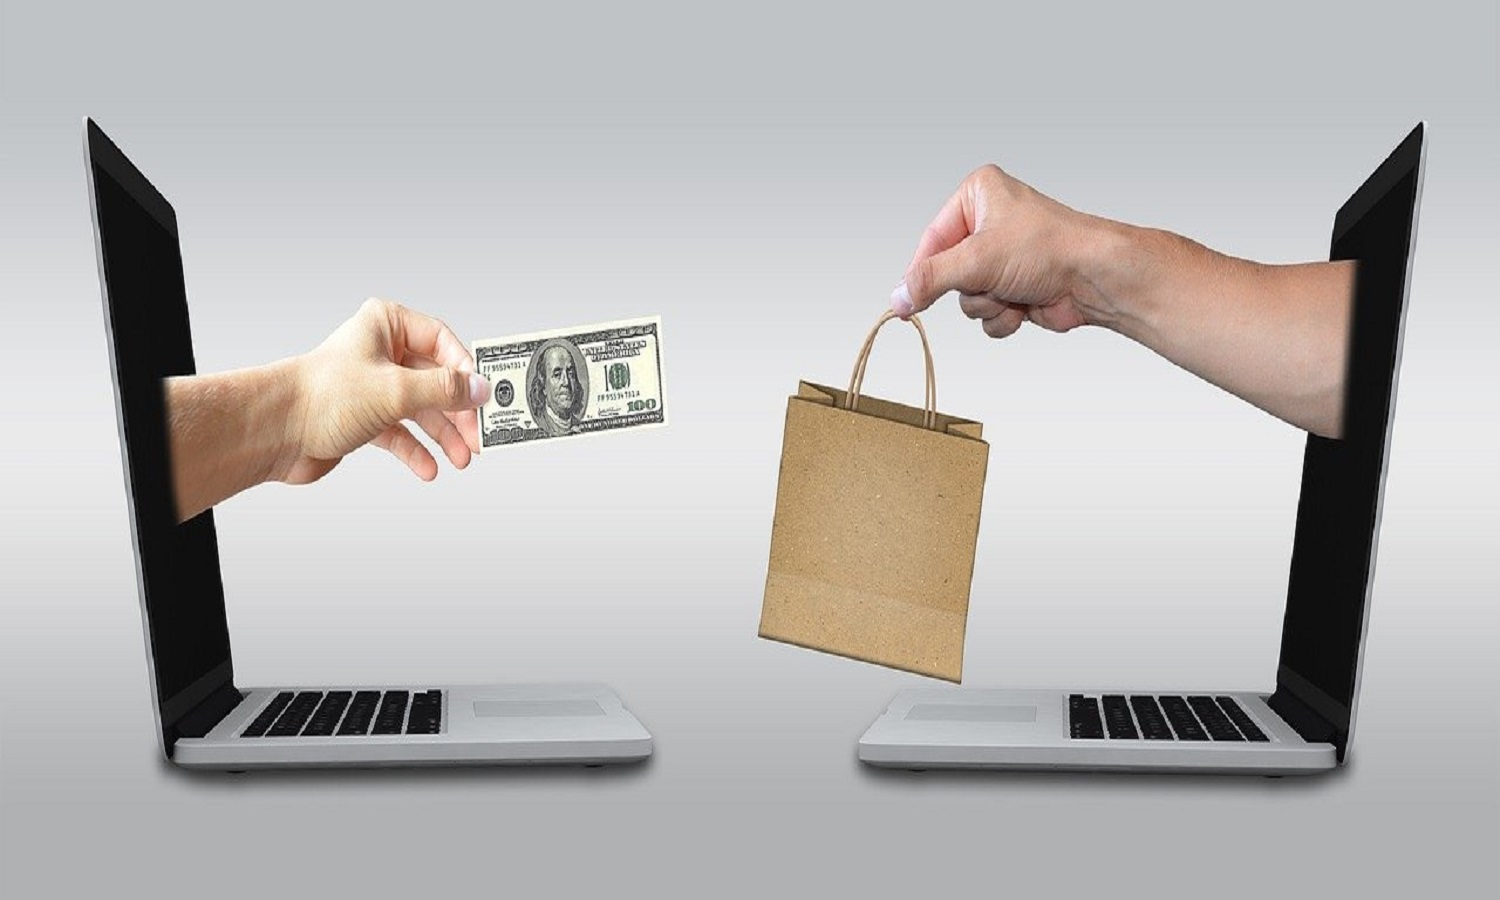 Benefits of an online store over a regular retail outlet